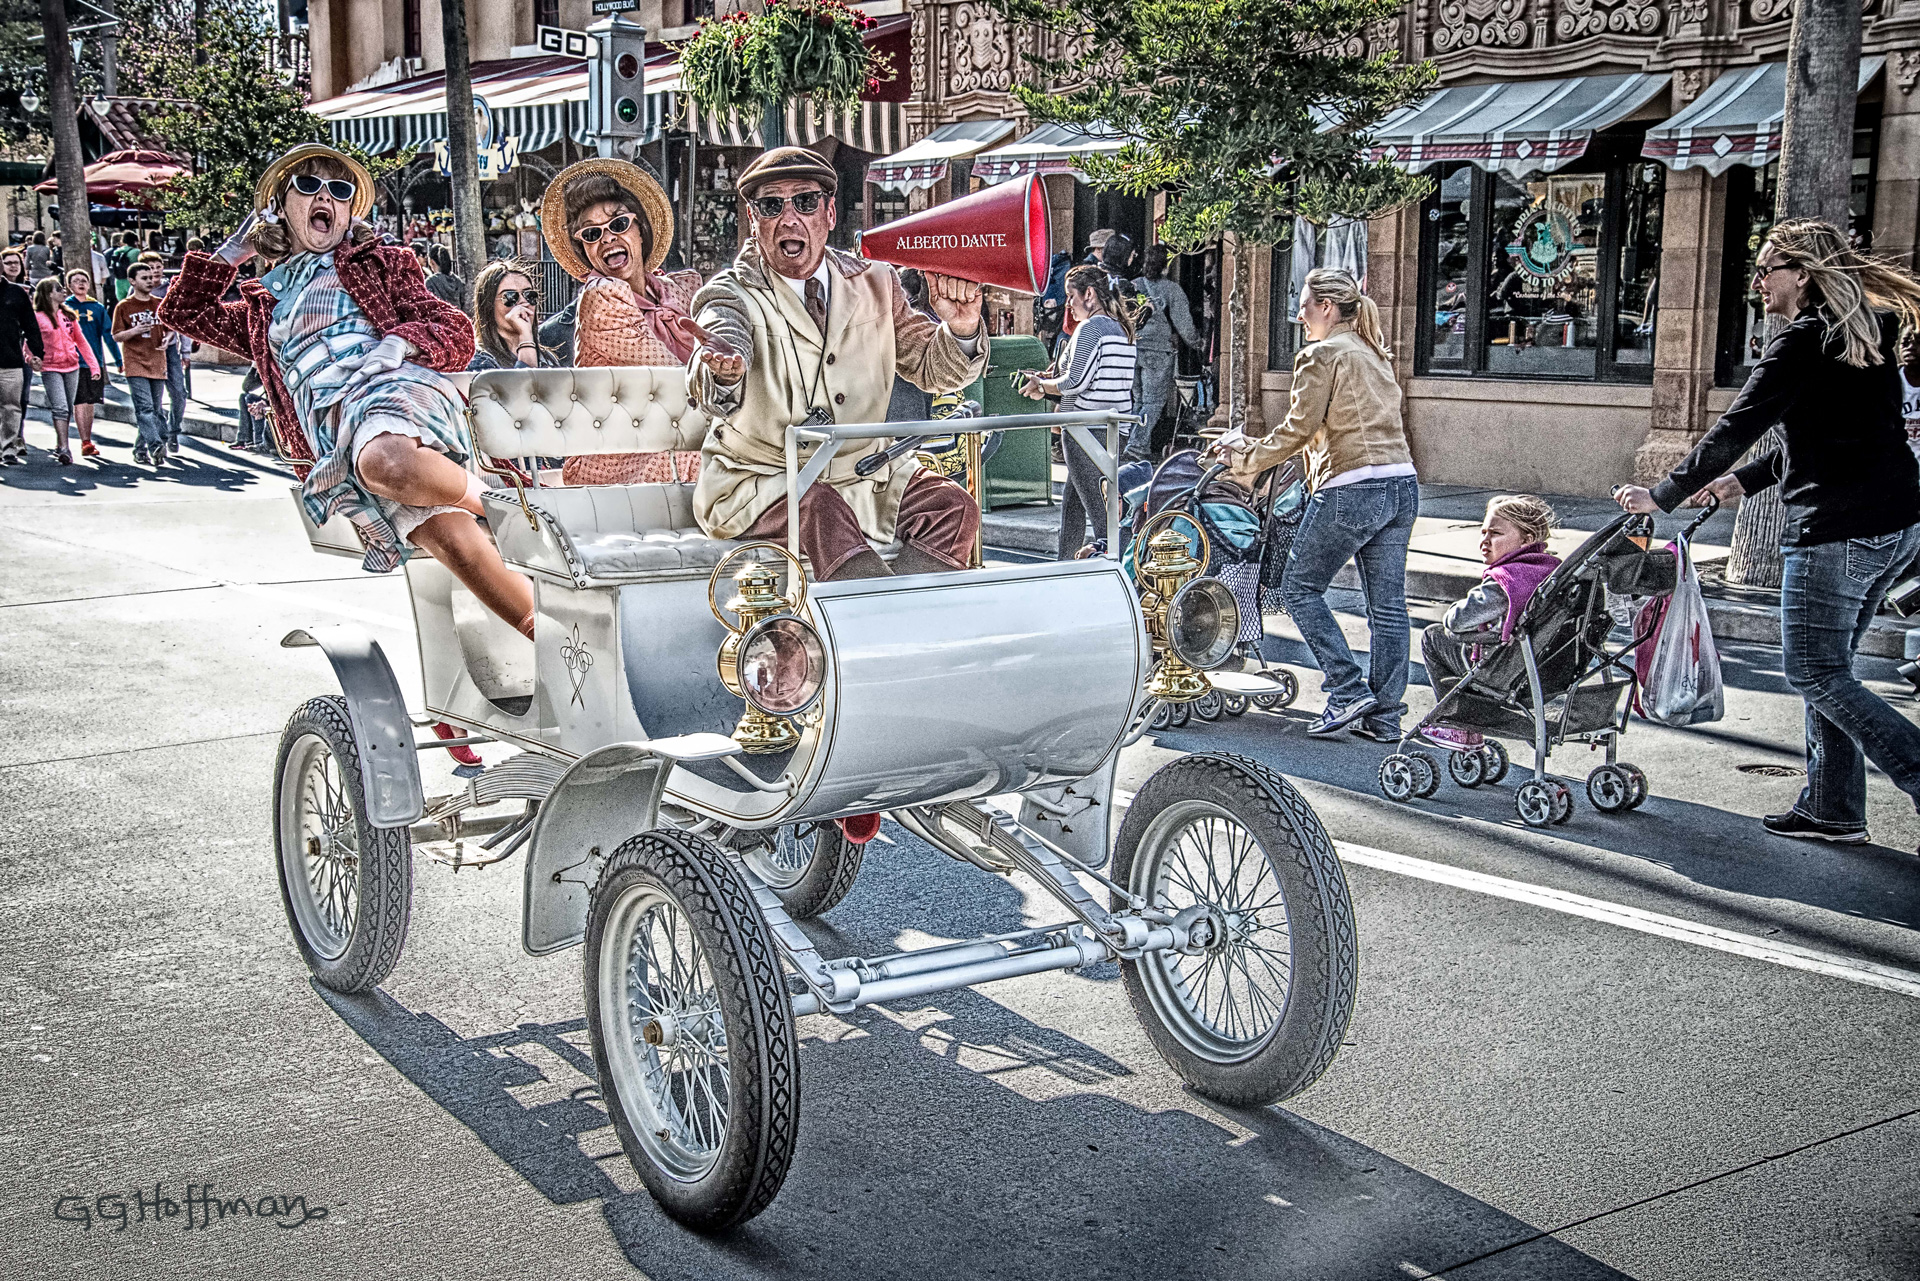 Hollywood Studios Comes Alive at DisneyWorld